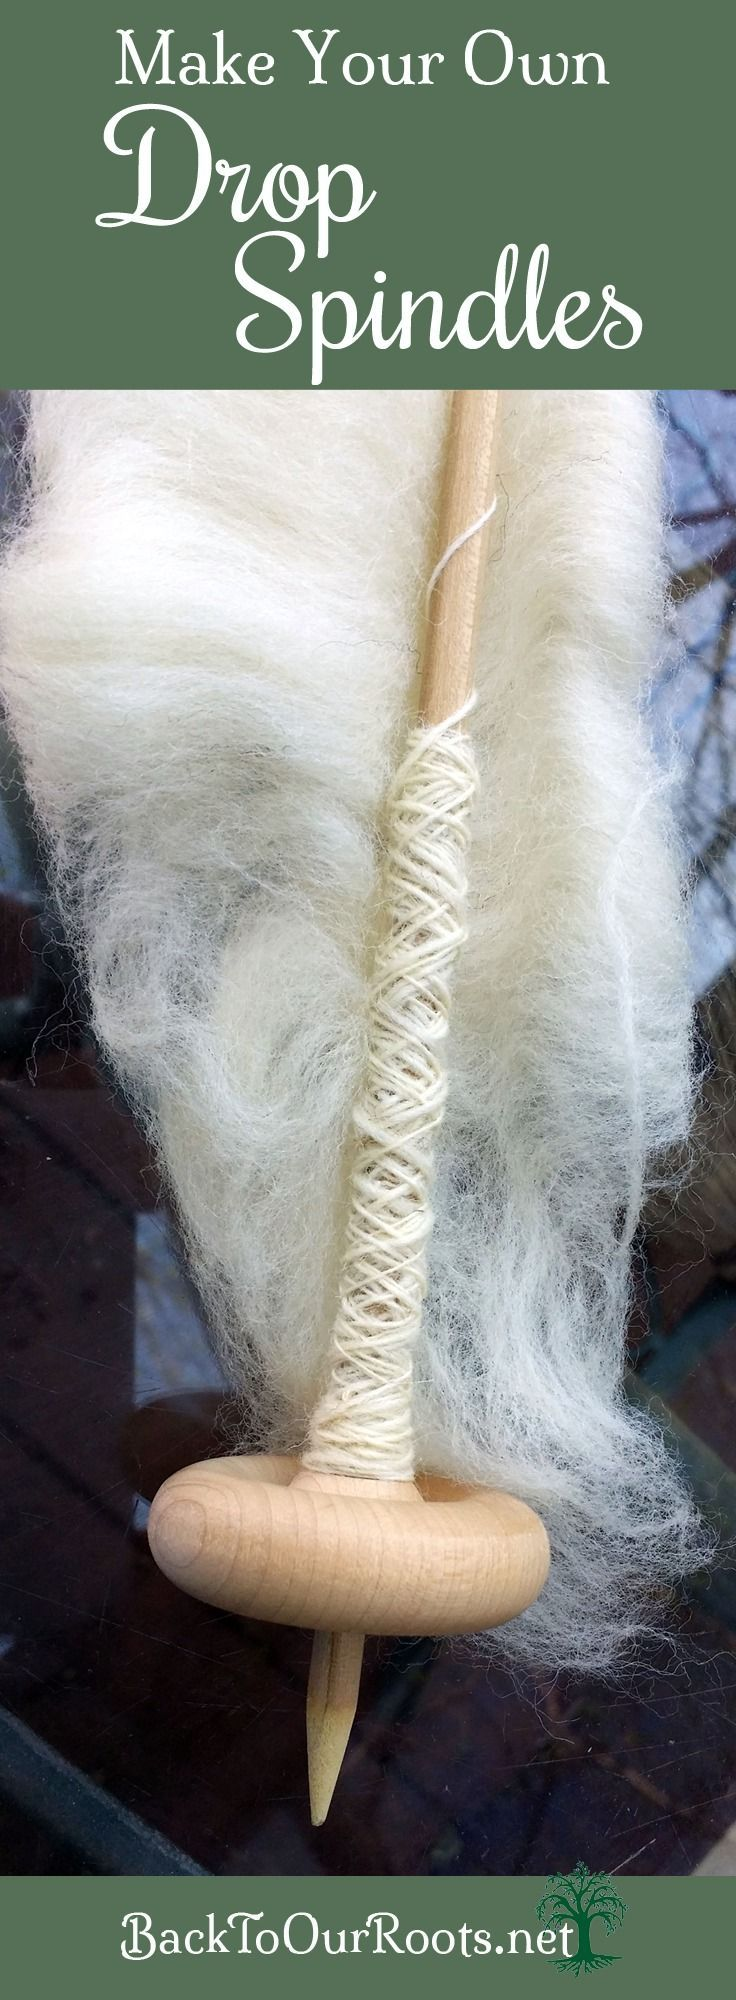 DIY Drop Spindles for Spinning Yarn